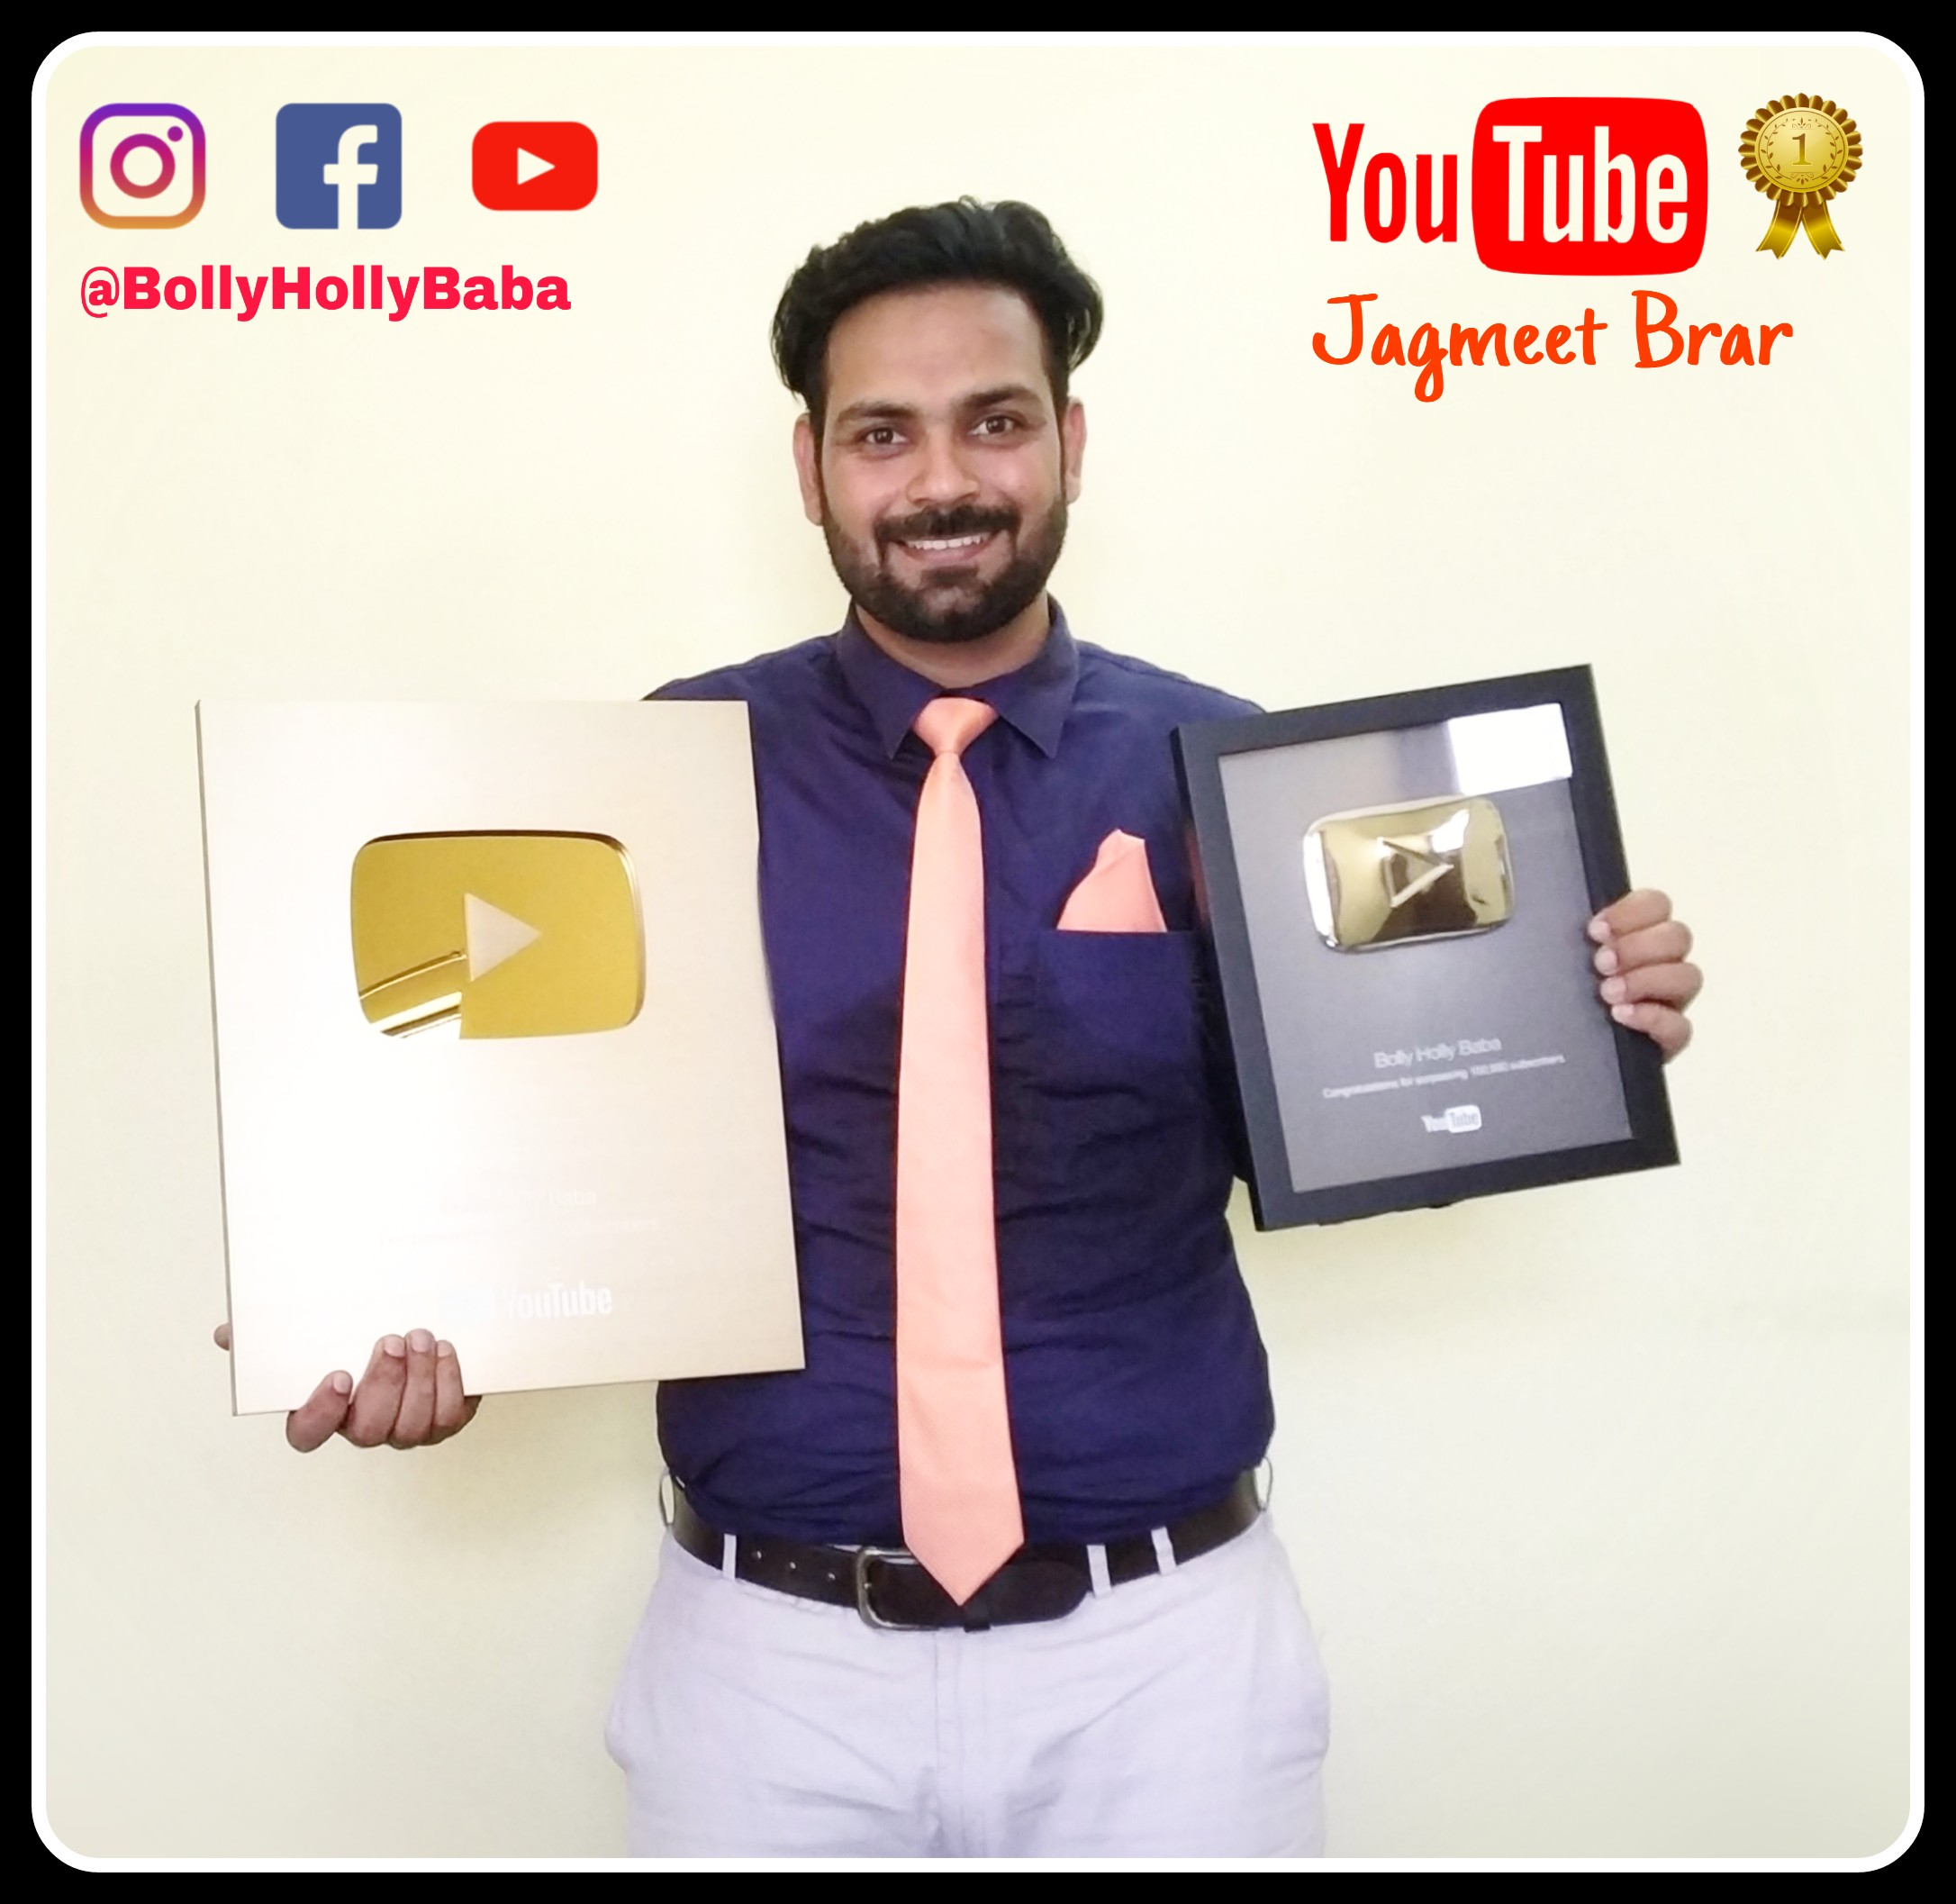 youtube mastery course by Jagmeet Brar,bolly holly baba,award winning punjabi youtube channel bolly holly baba